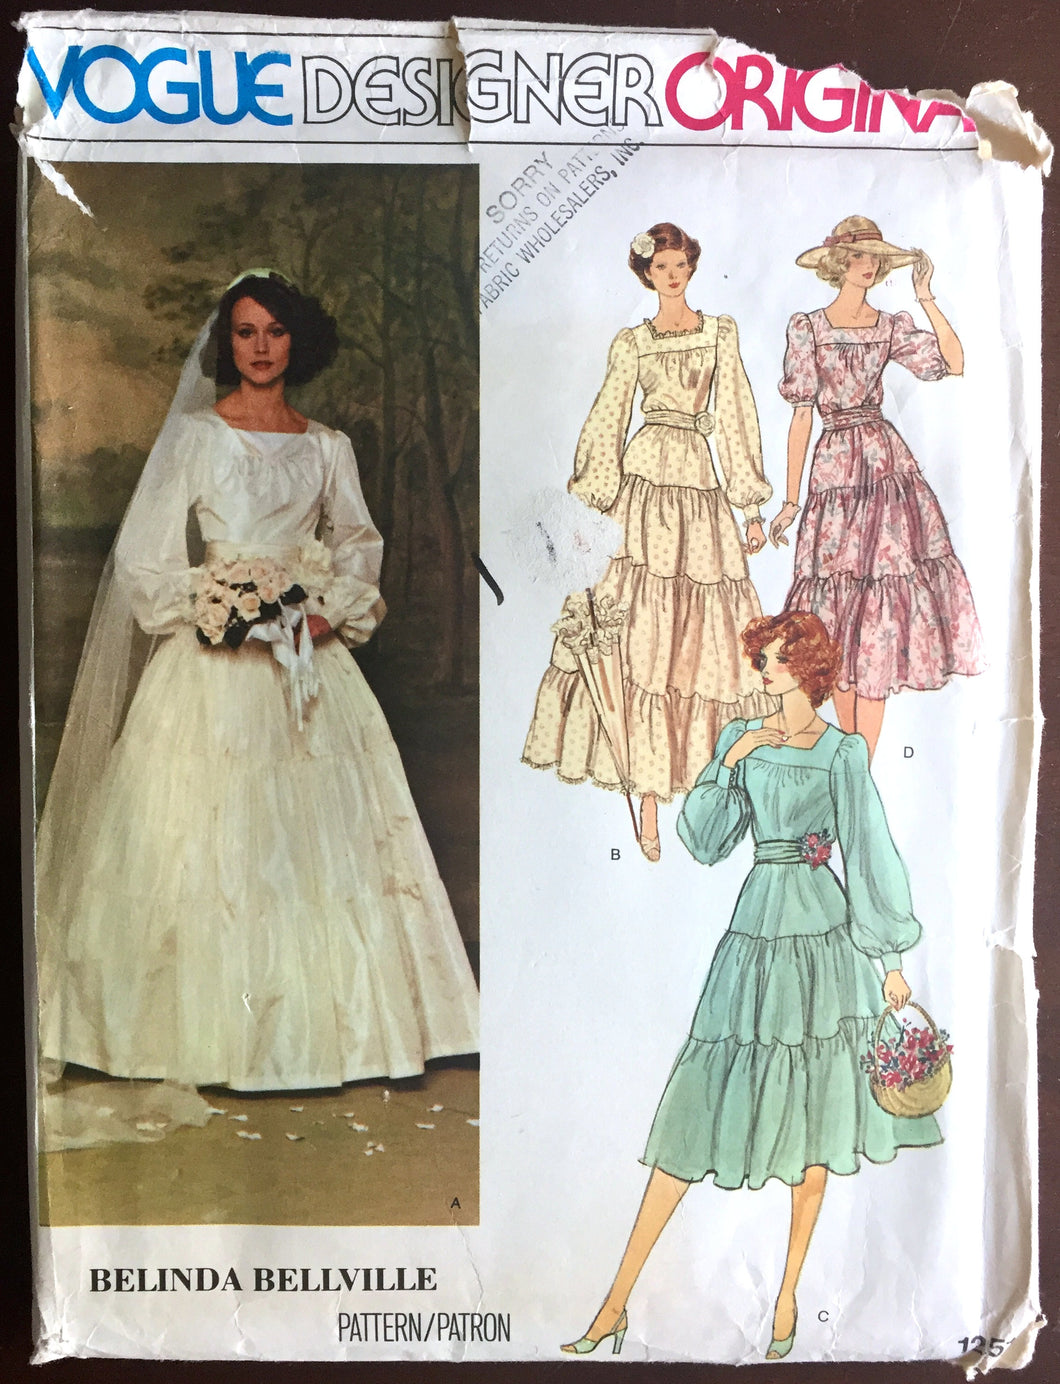 1970's Vogue Designer Wedding Dress, Petticoat and Bridesmaid Dress Pattern - Bust 32.5